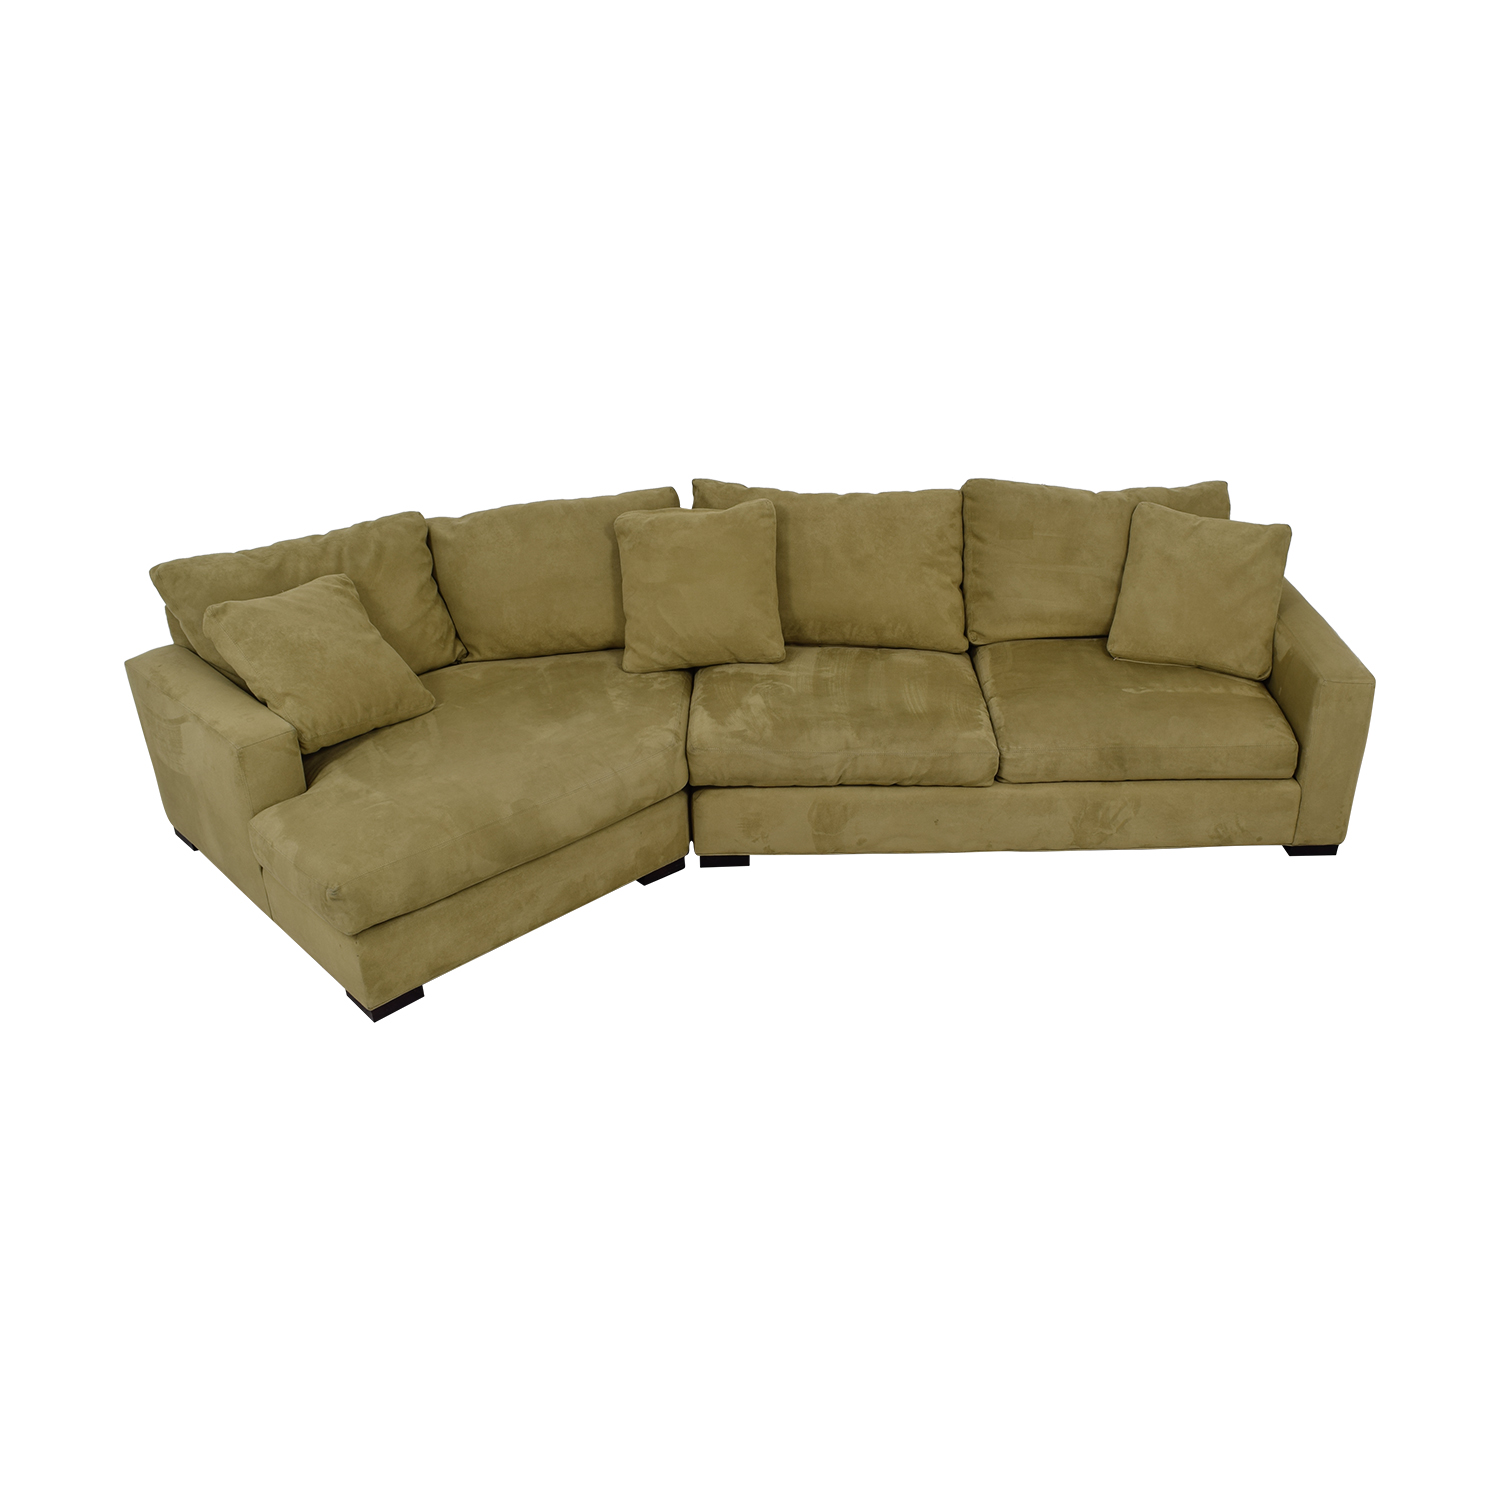 Room & Board Room & Board Beige Metro Sofa with Angled Chaise on sale